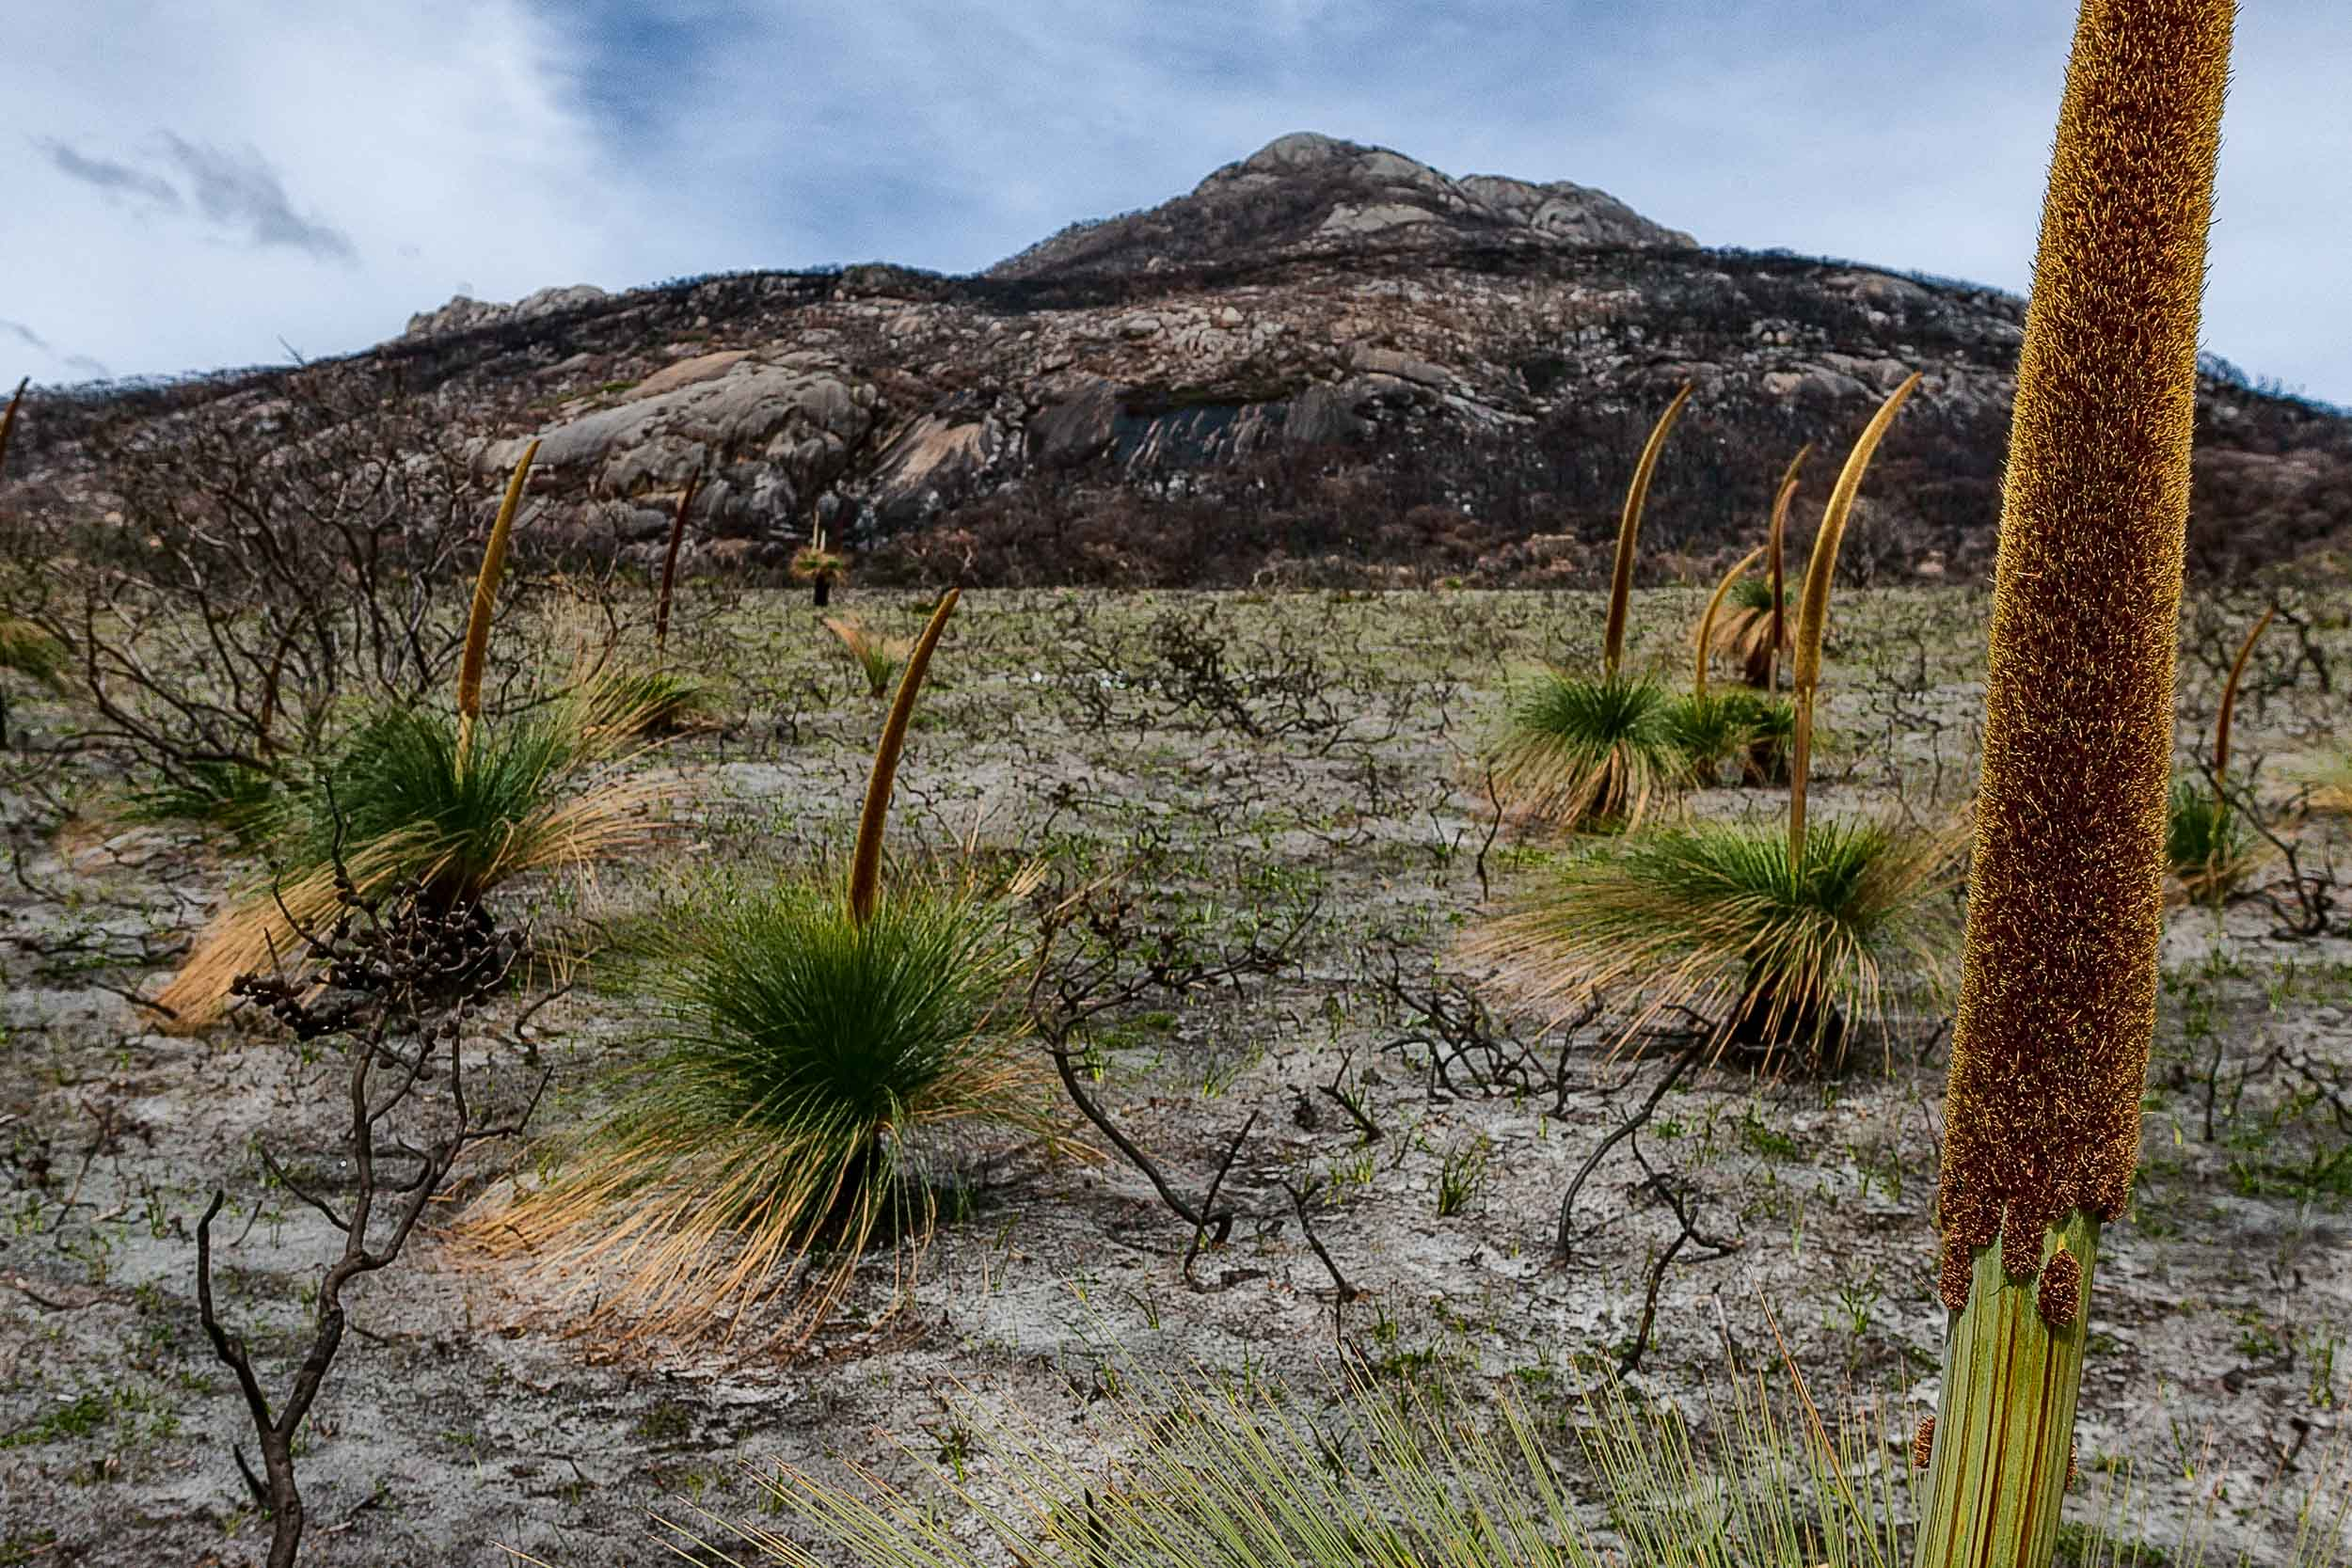 New plant growth following a    devasting fire    at    Wilsons Promontory National Park    in    Australia   .